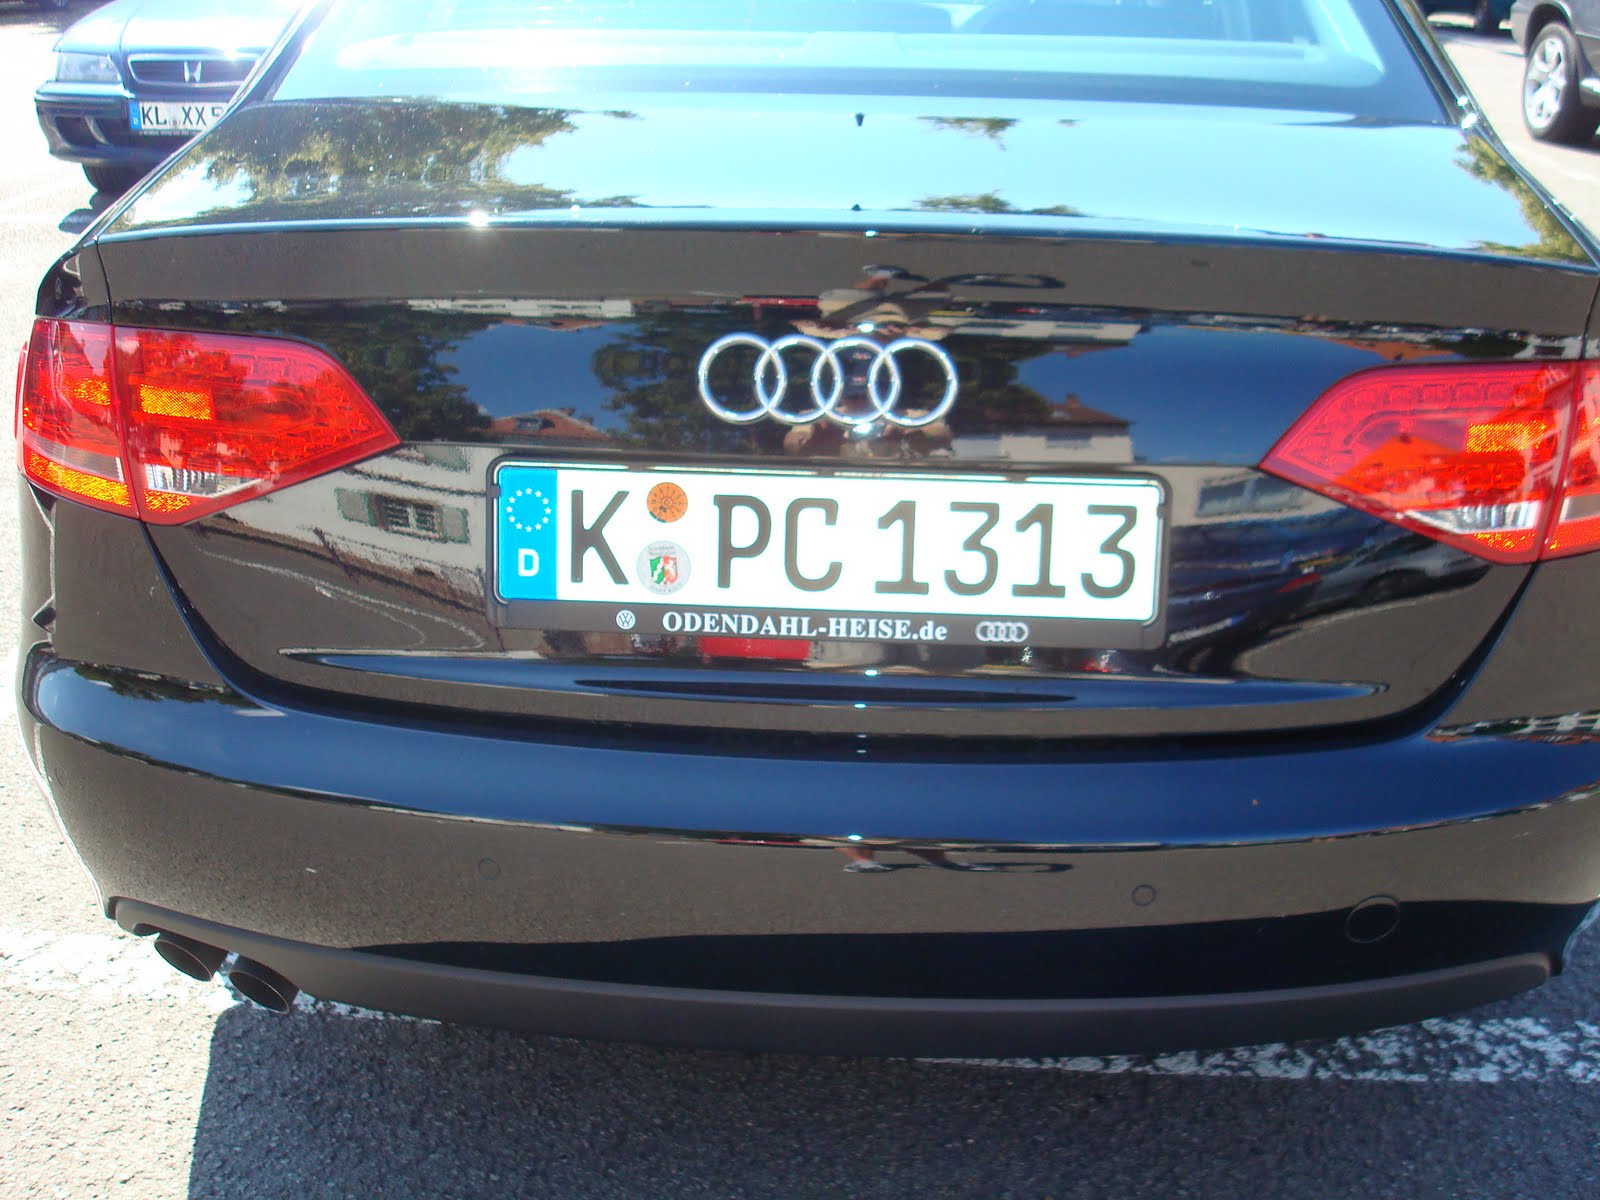 Rowdy In Germany German License Plates